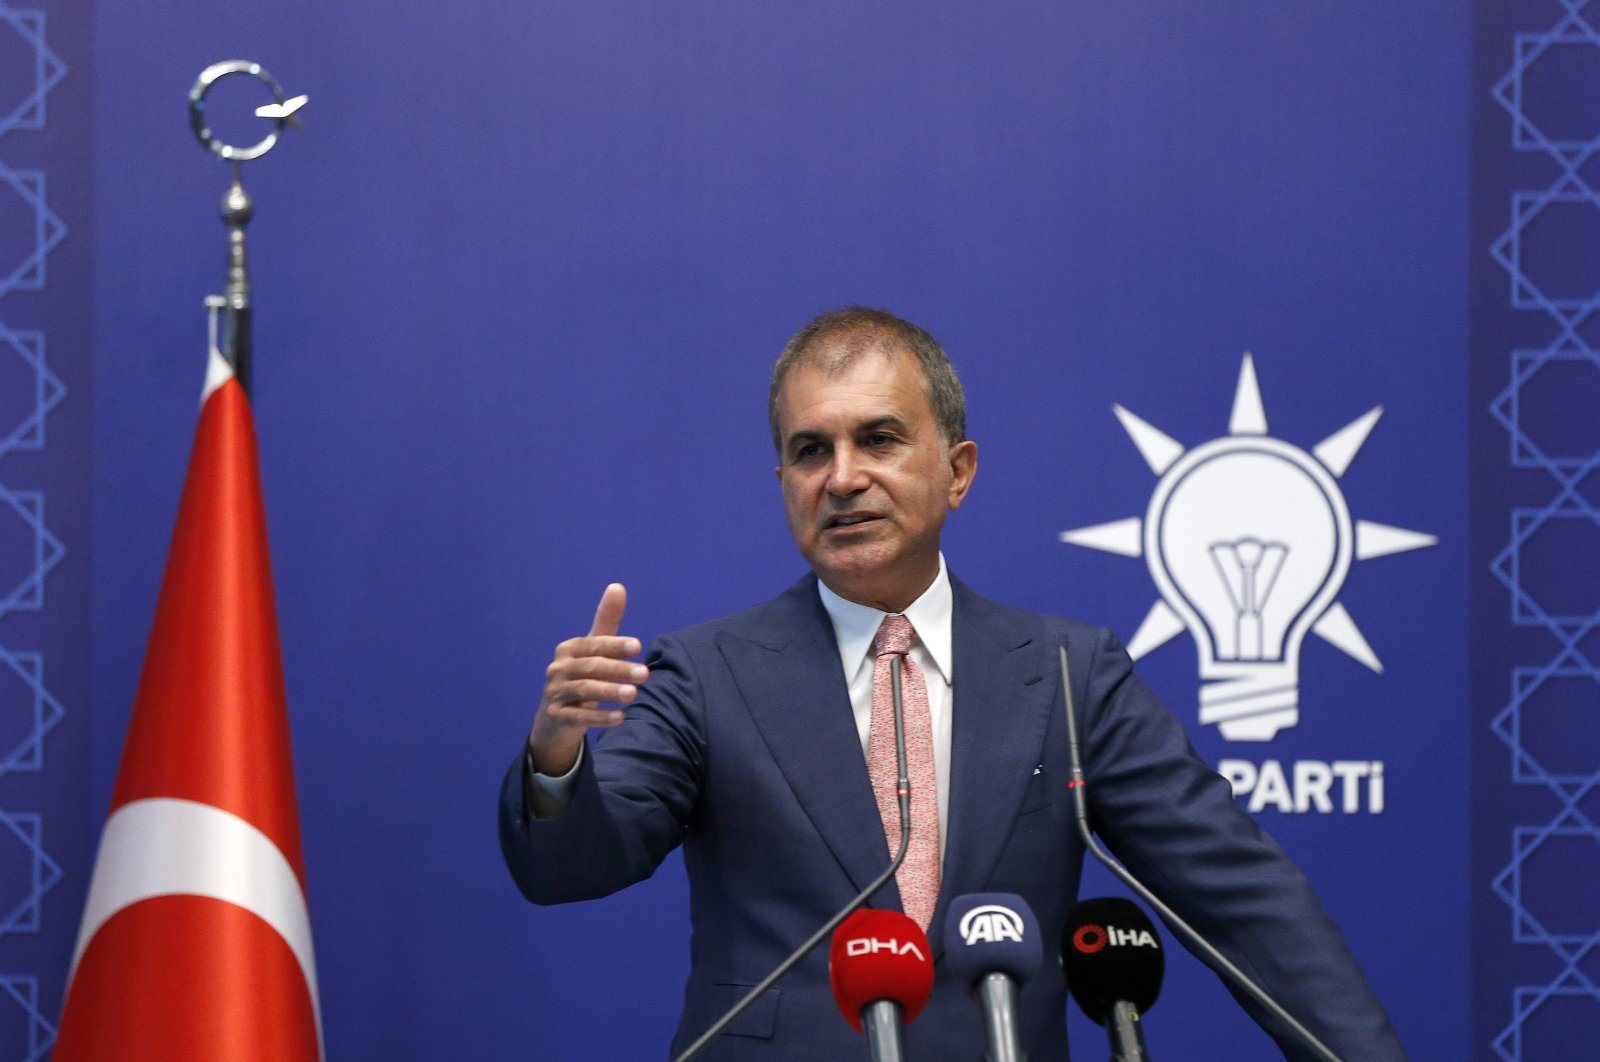 Justice and Development Party (AK Party) spokesman Ömer Çelik speaks during a news conference on July 13, 2020. (AA Photo)